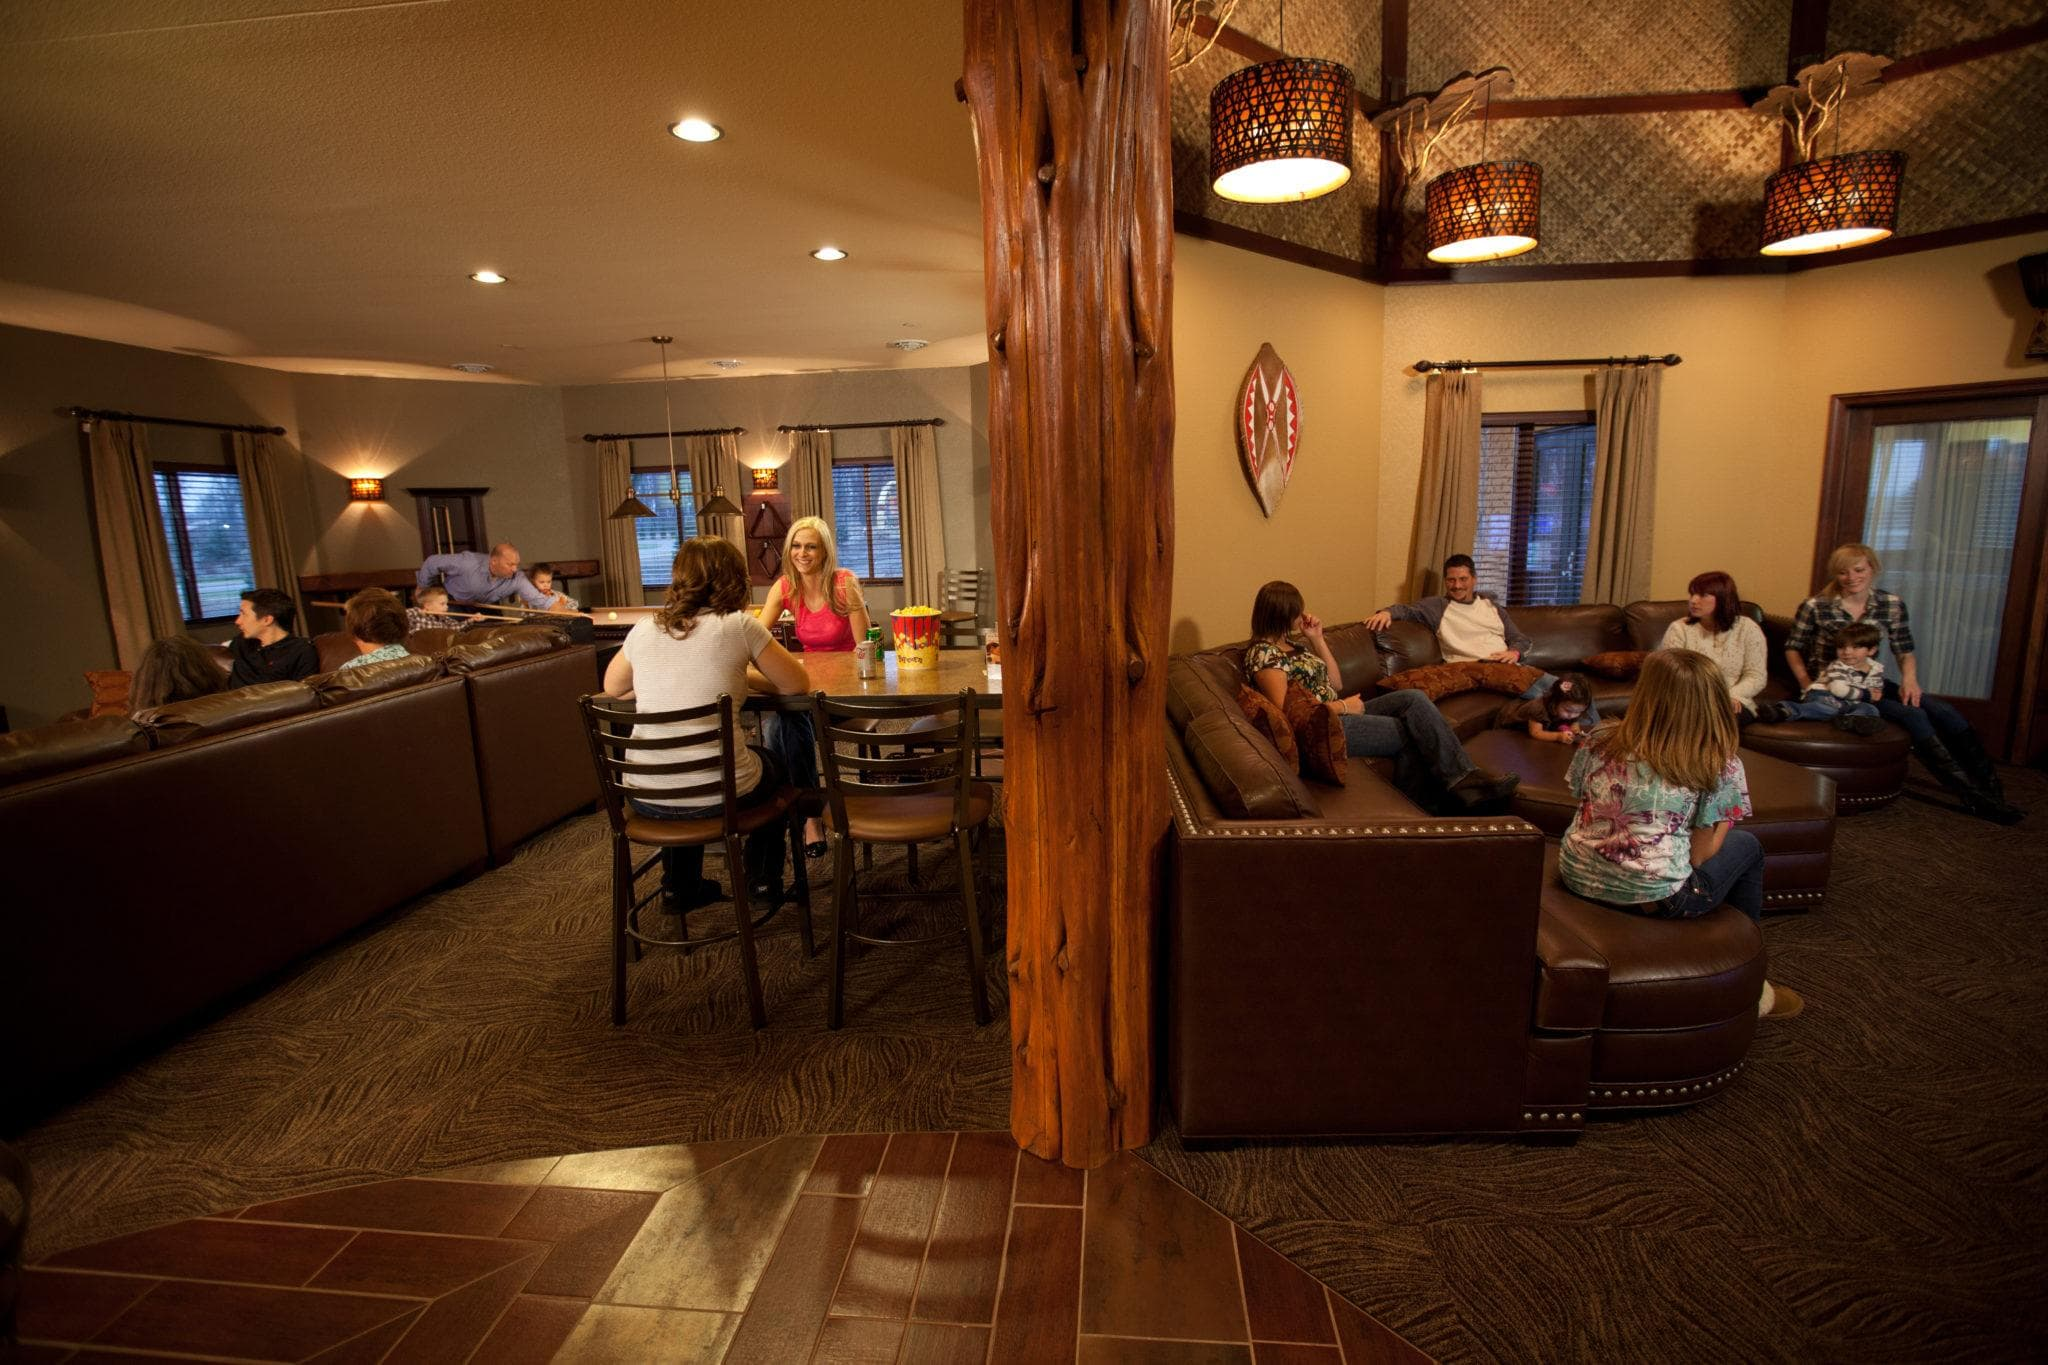 The expansive Entertainment Villa at Kalahari Resorts is fit for a king and his family ~ 5 Hotel Suites for Kids You Must See to Believe